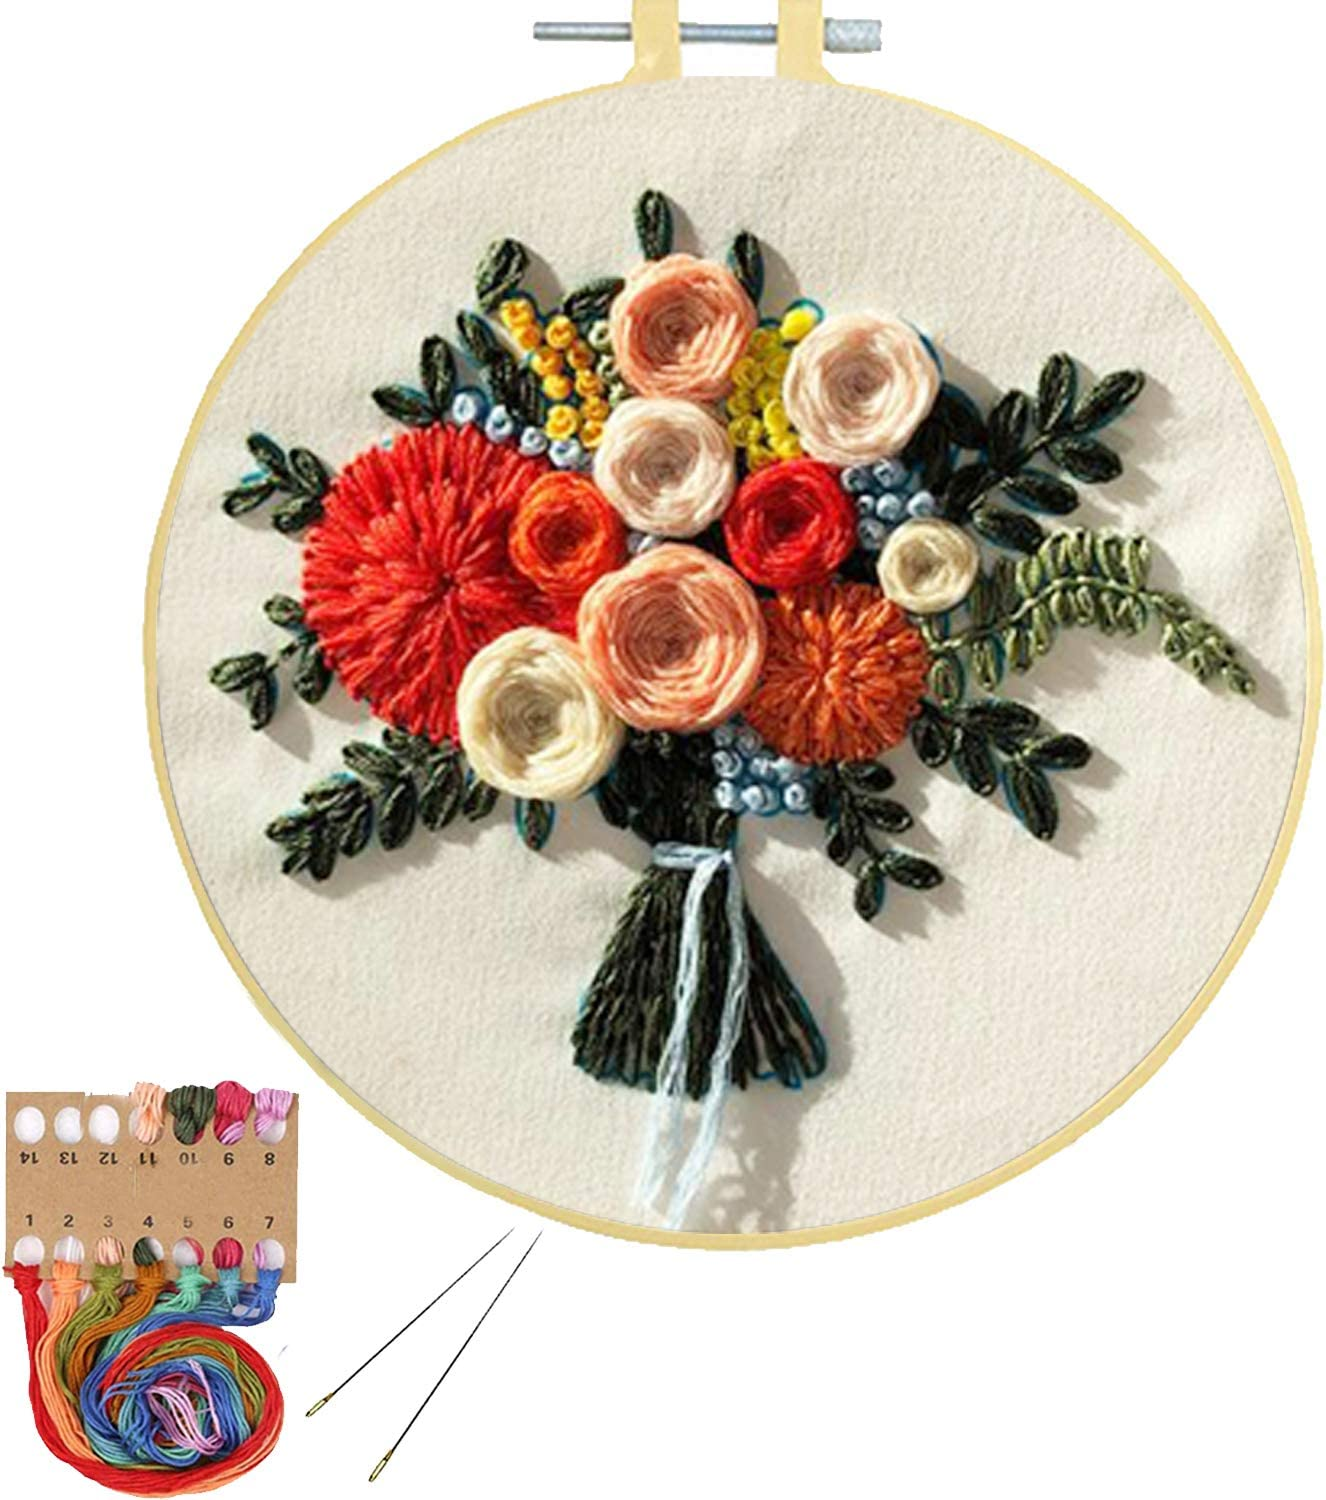 2 Pack Embroidery Kits with Pattern for Beginners Adults Pinkol Cross Stitch Kits Stamped Needlepoint with Embroidery Hoops Cloth Fabric Thread